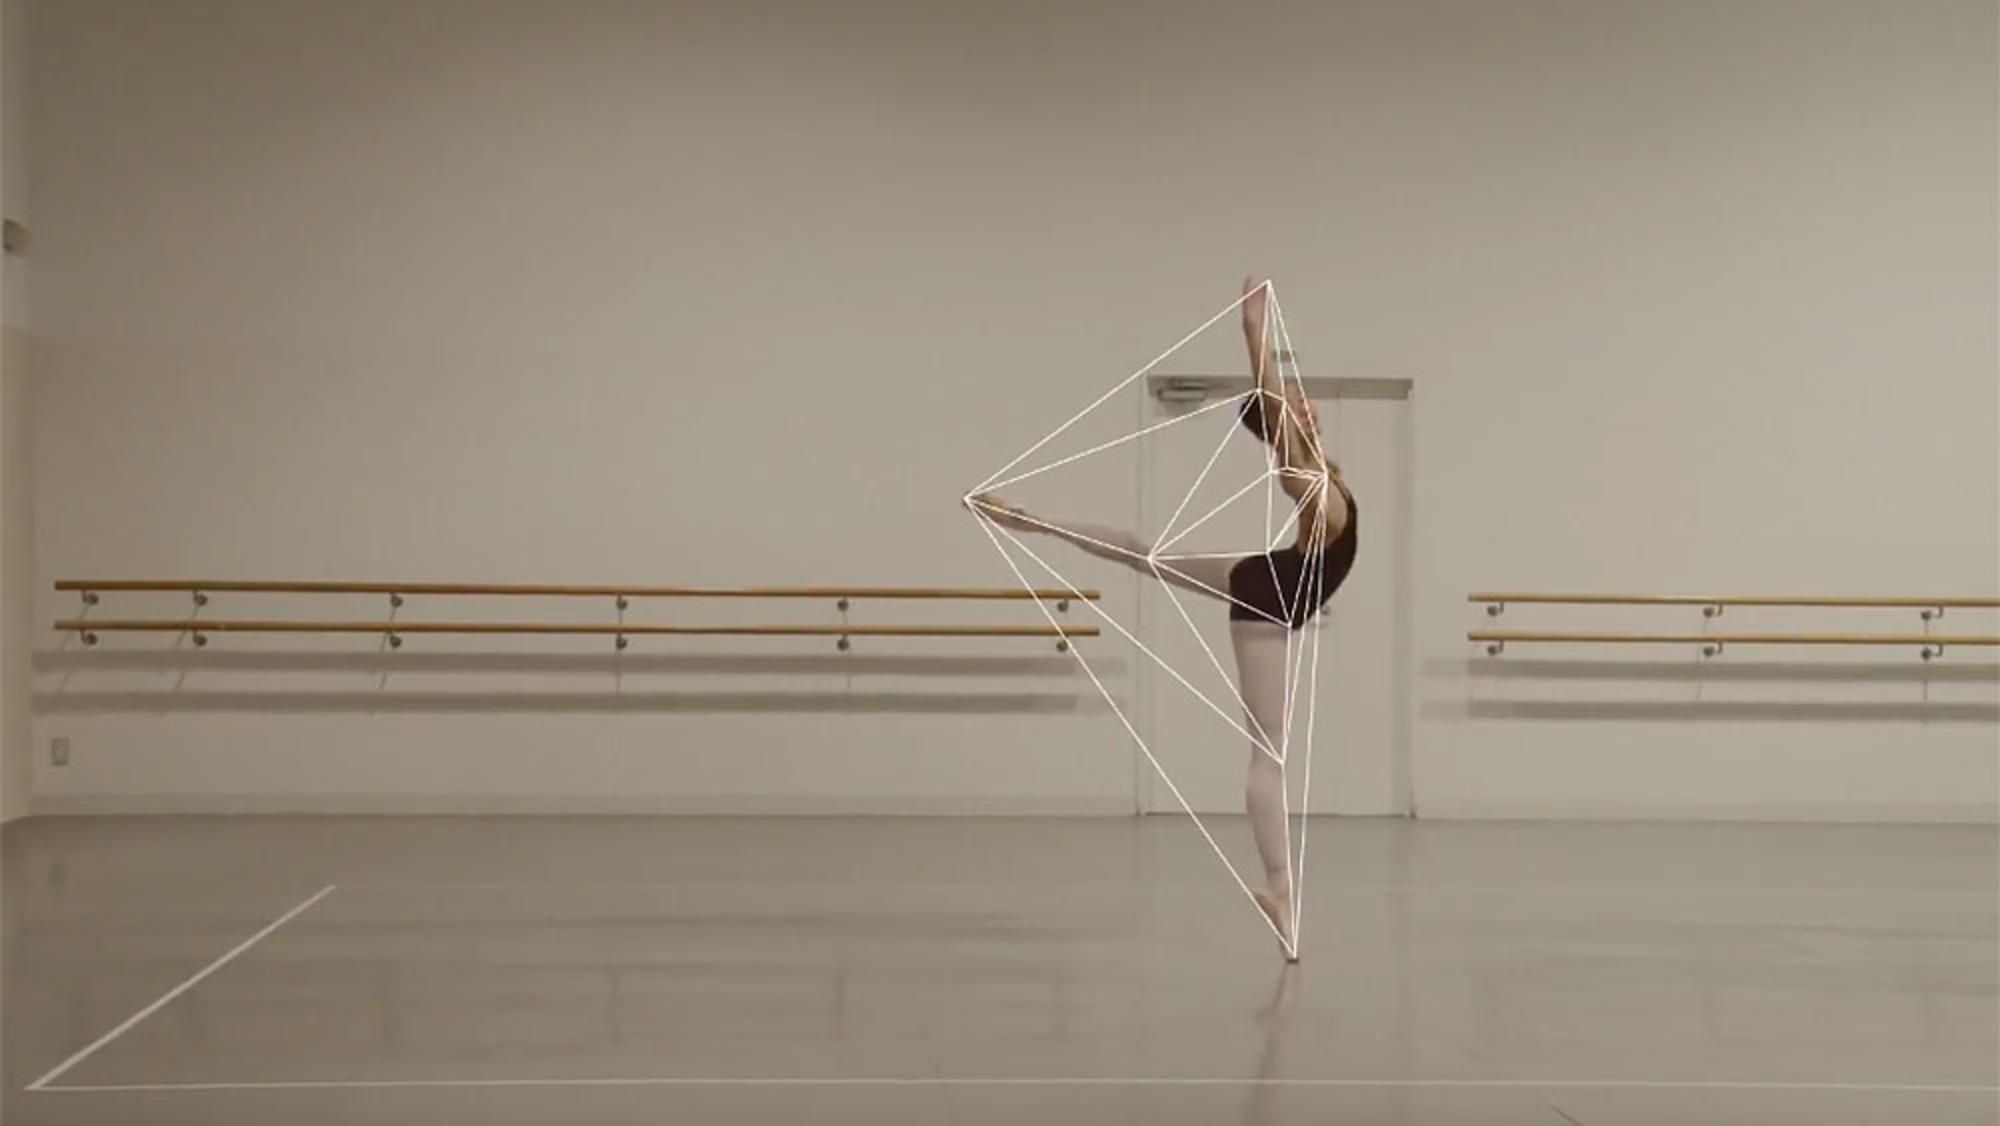 A ballerina dances with the geometry of her own movements